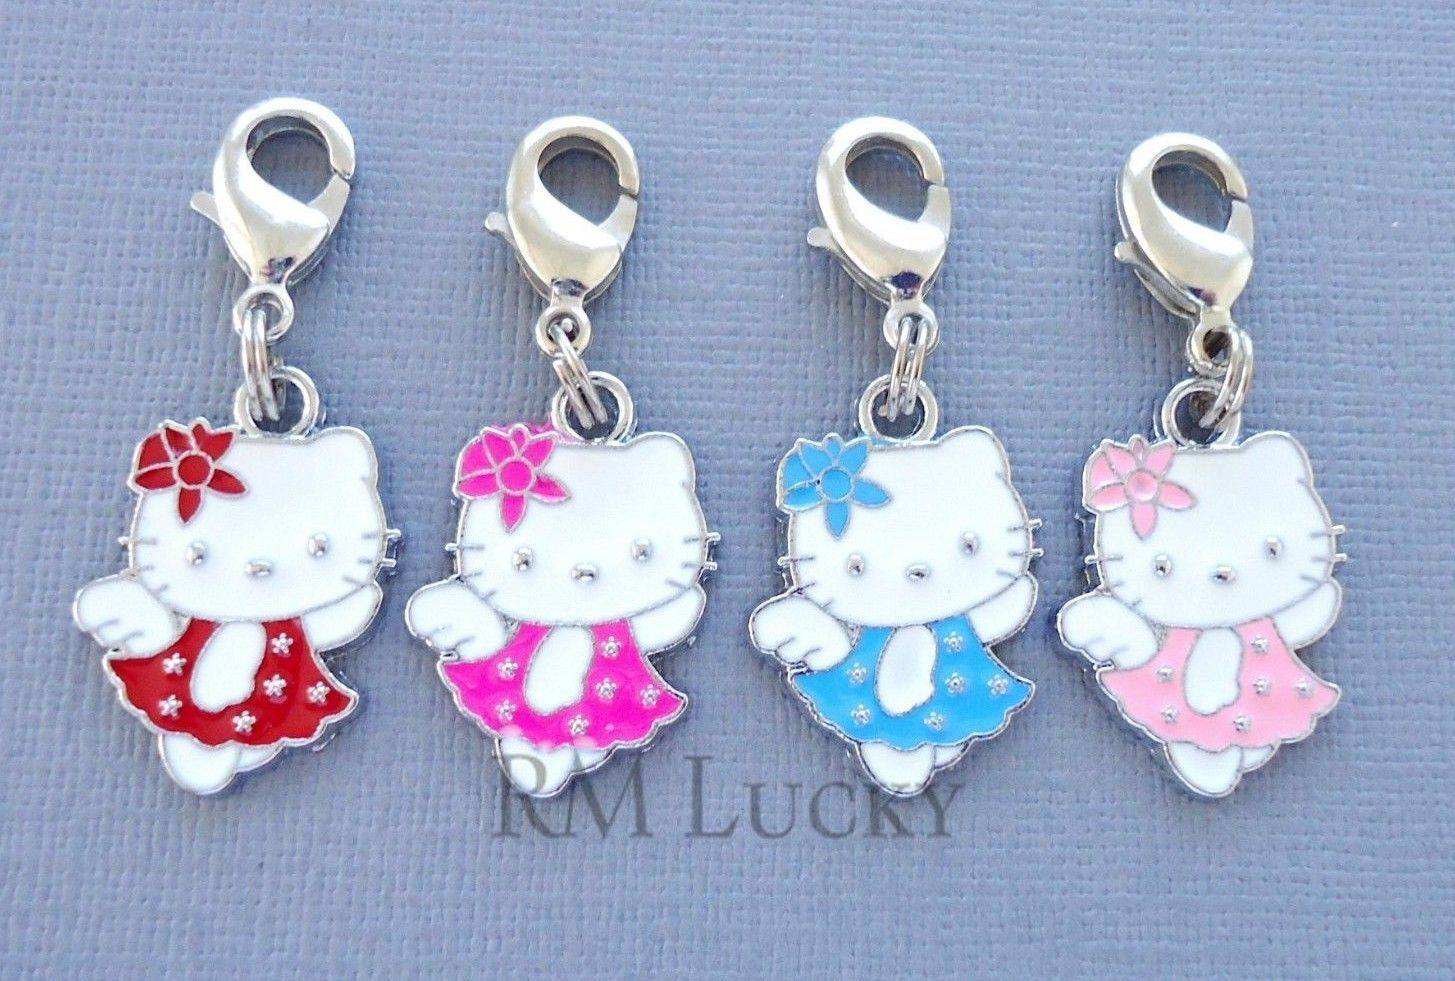 Dangle Pendant Hello Kitty Clip On Charm with Lobster Clasp Fits Link Chain C198 - $3.59